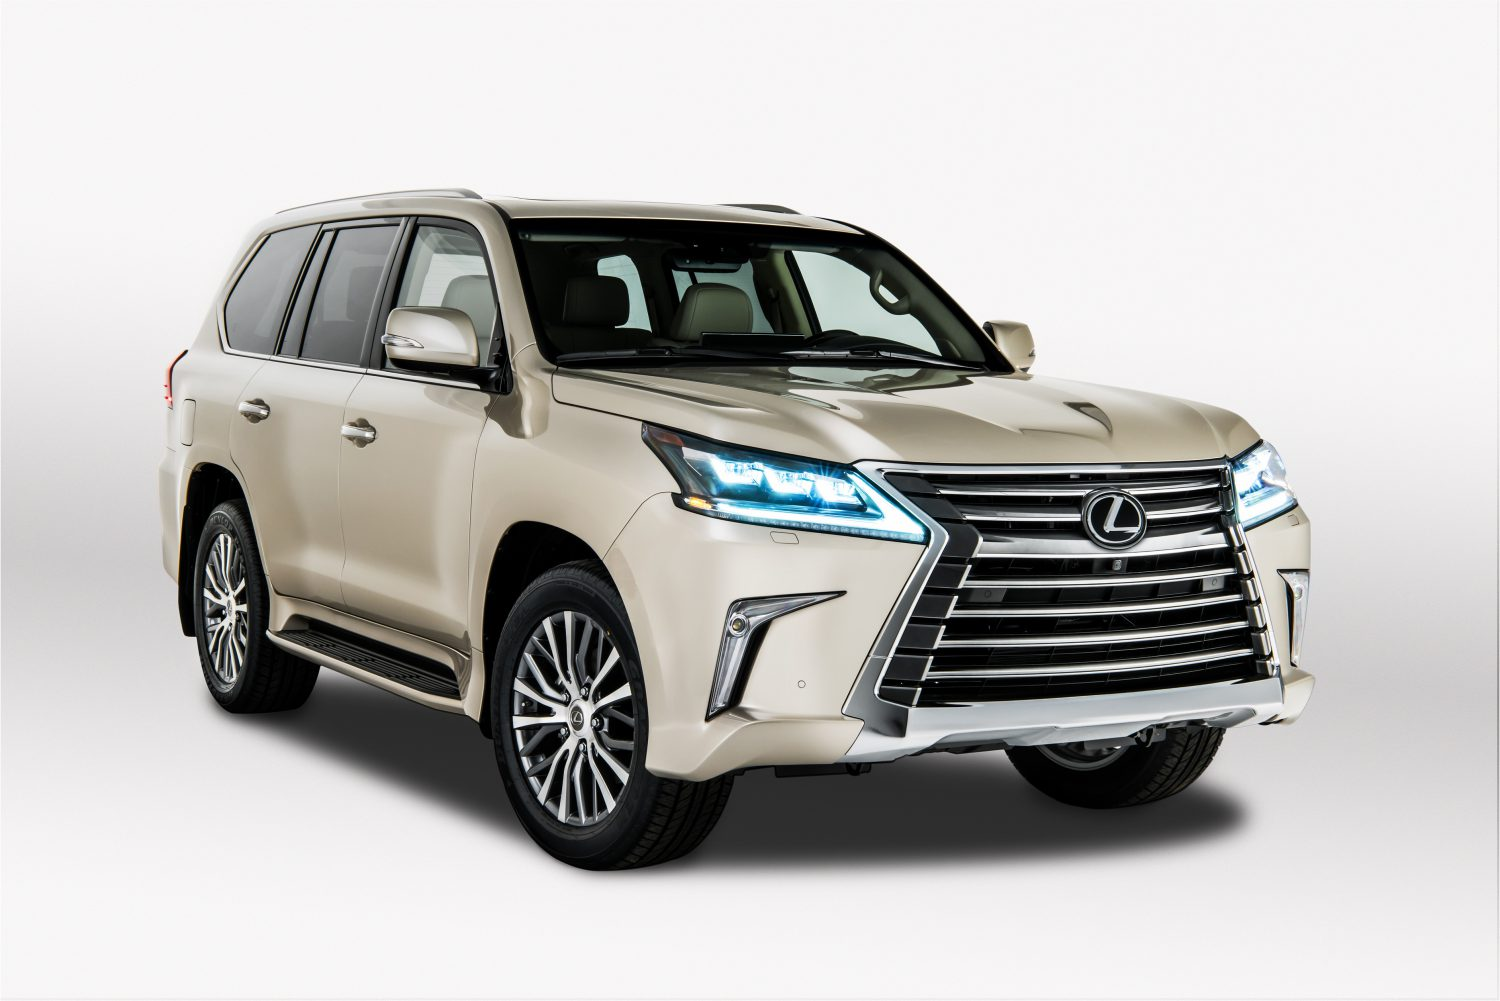 2018 Lexus LX 570: Possible Redesign, Changes, Price >> Adventurers Get More Cargo Space With Lexus New Two Row